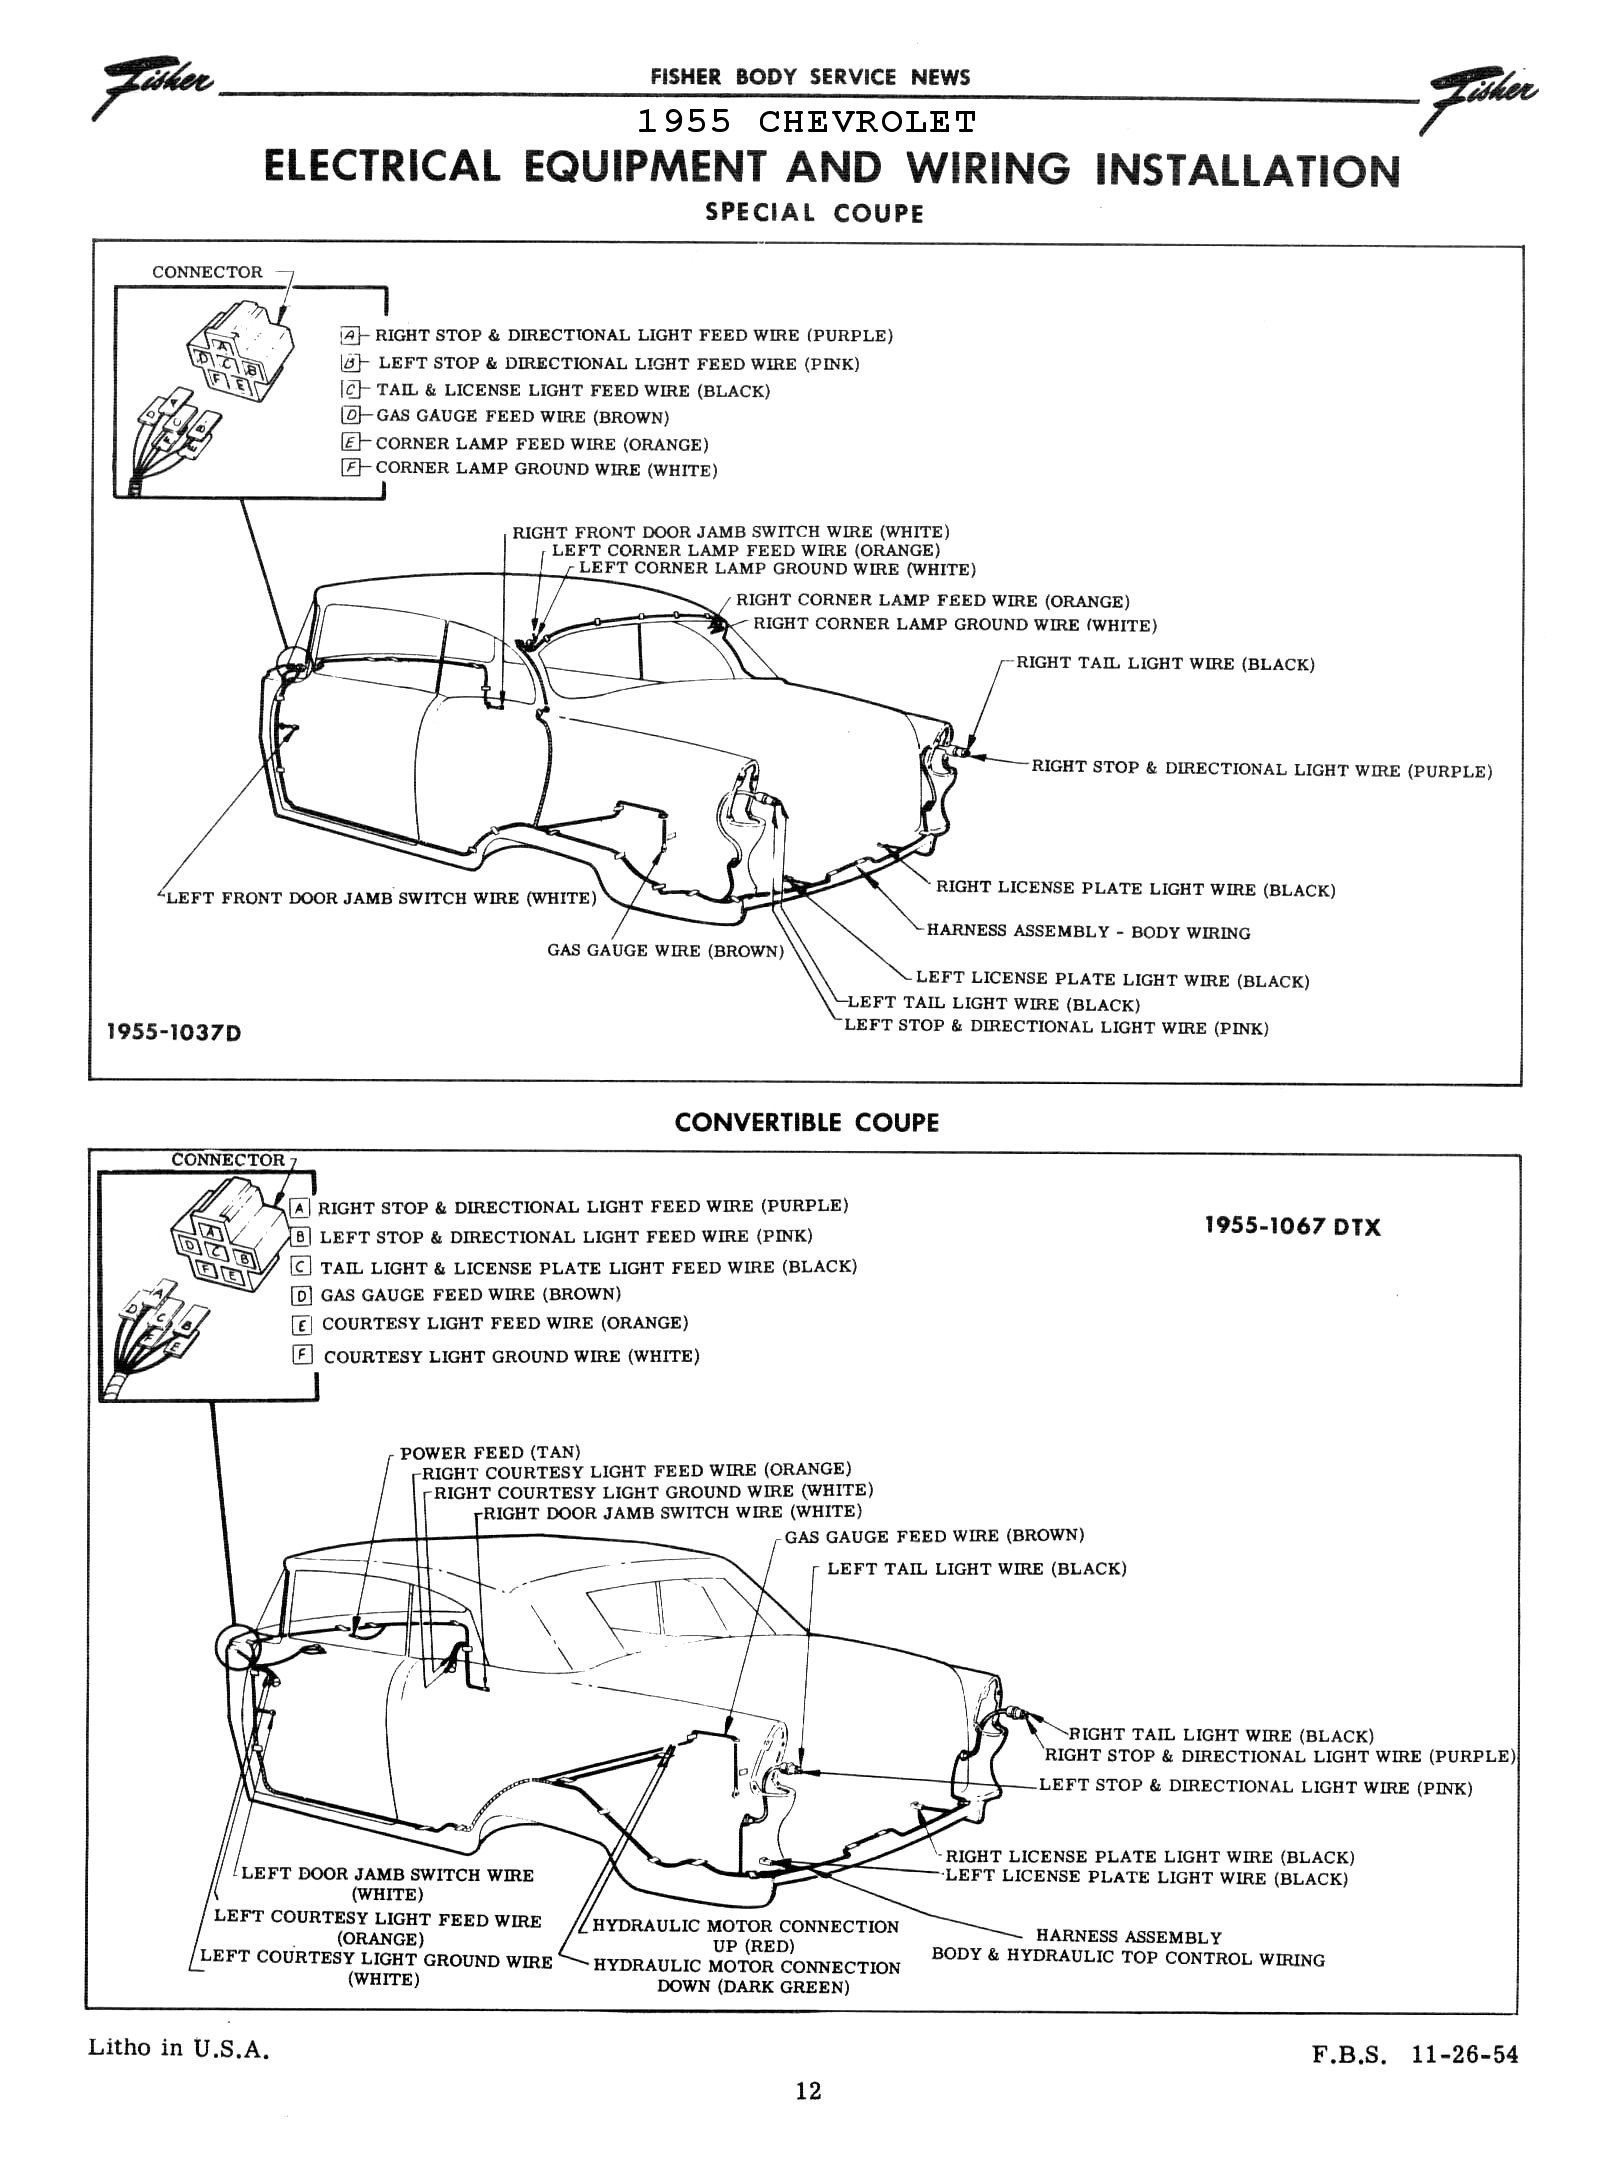 1954 Chevy Wiring Diagram Online Circuit Mcculloch 140 Diagrams Rh Oldcarmanualproject Com Headlight Switch Chevrolet